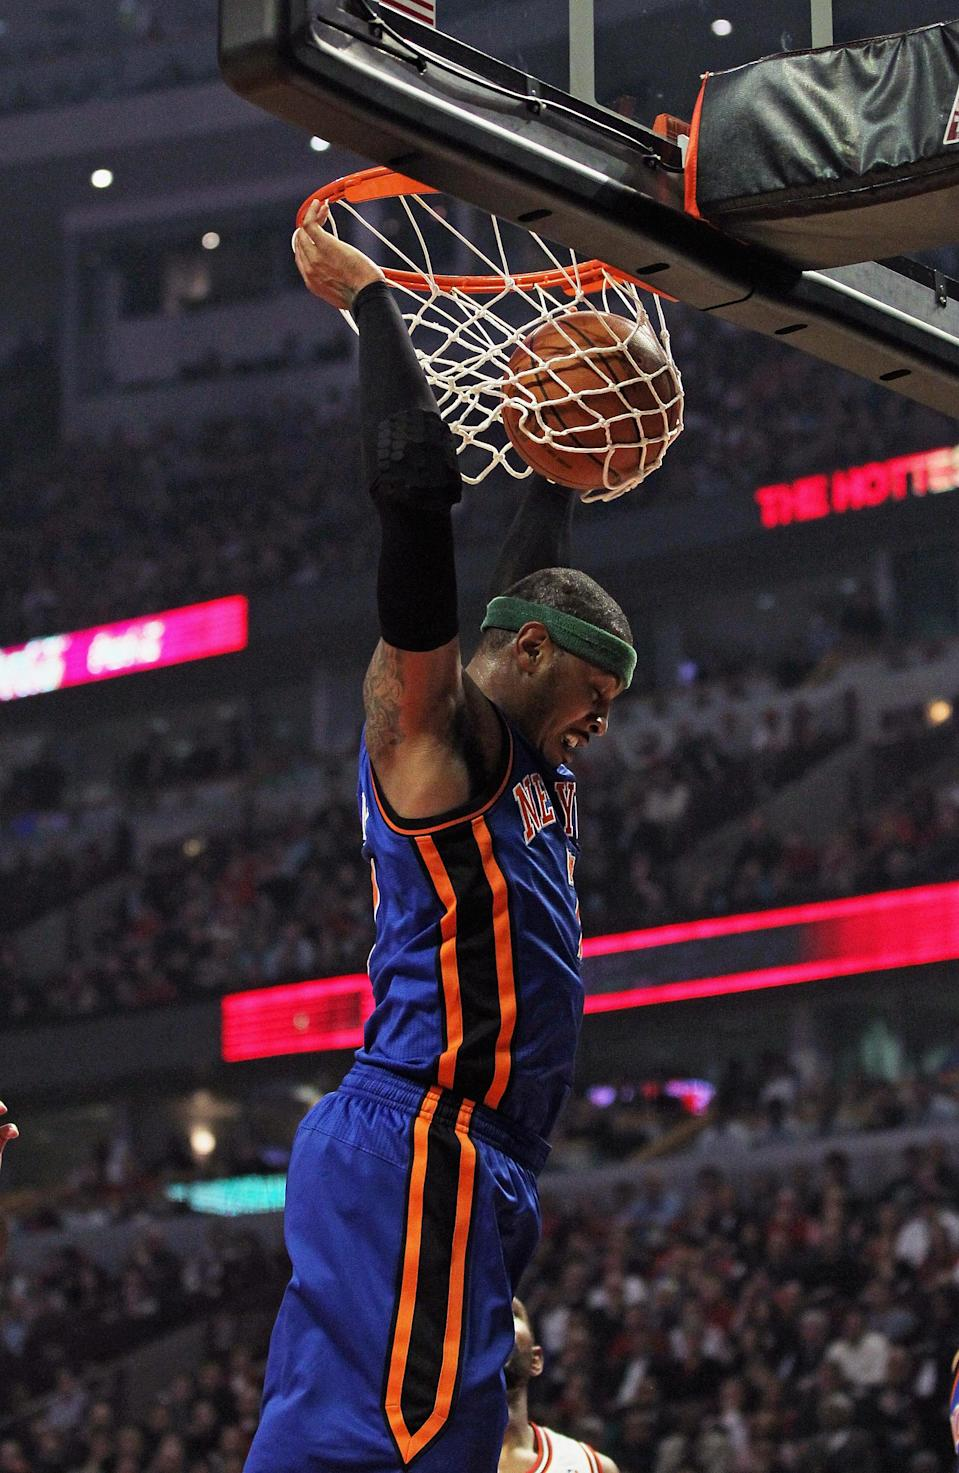 Carmelo Anthony dunks against the Chicago Bulls at the United Center on April 10, 2012 in Chicago. (Photo by Jonathan Daniel/Getty Images)